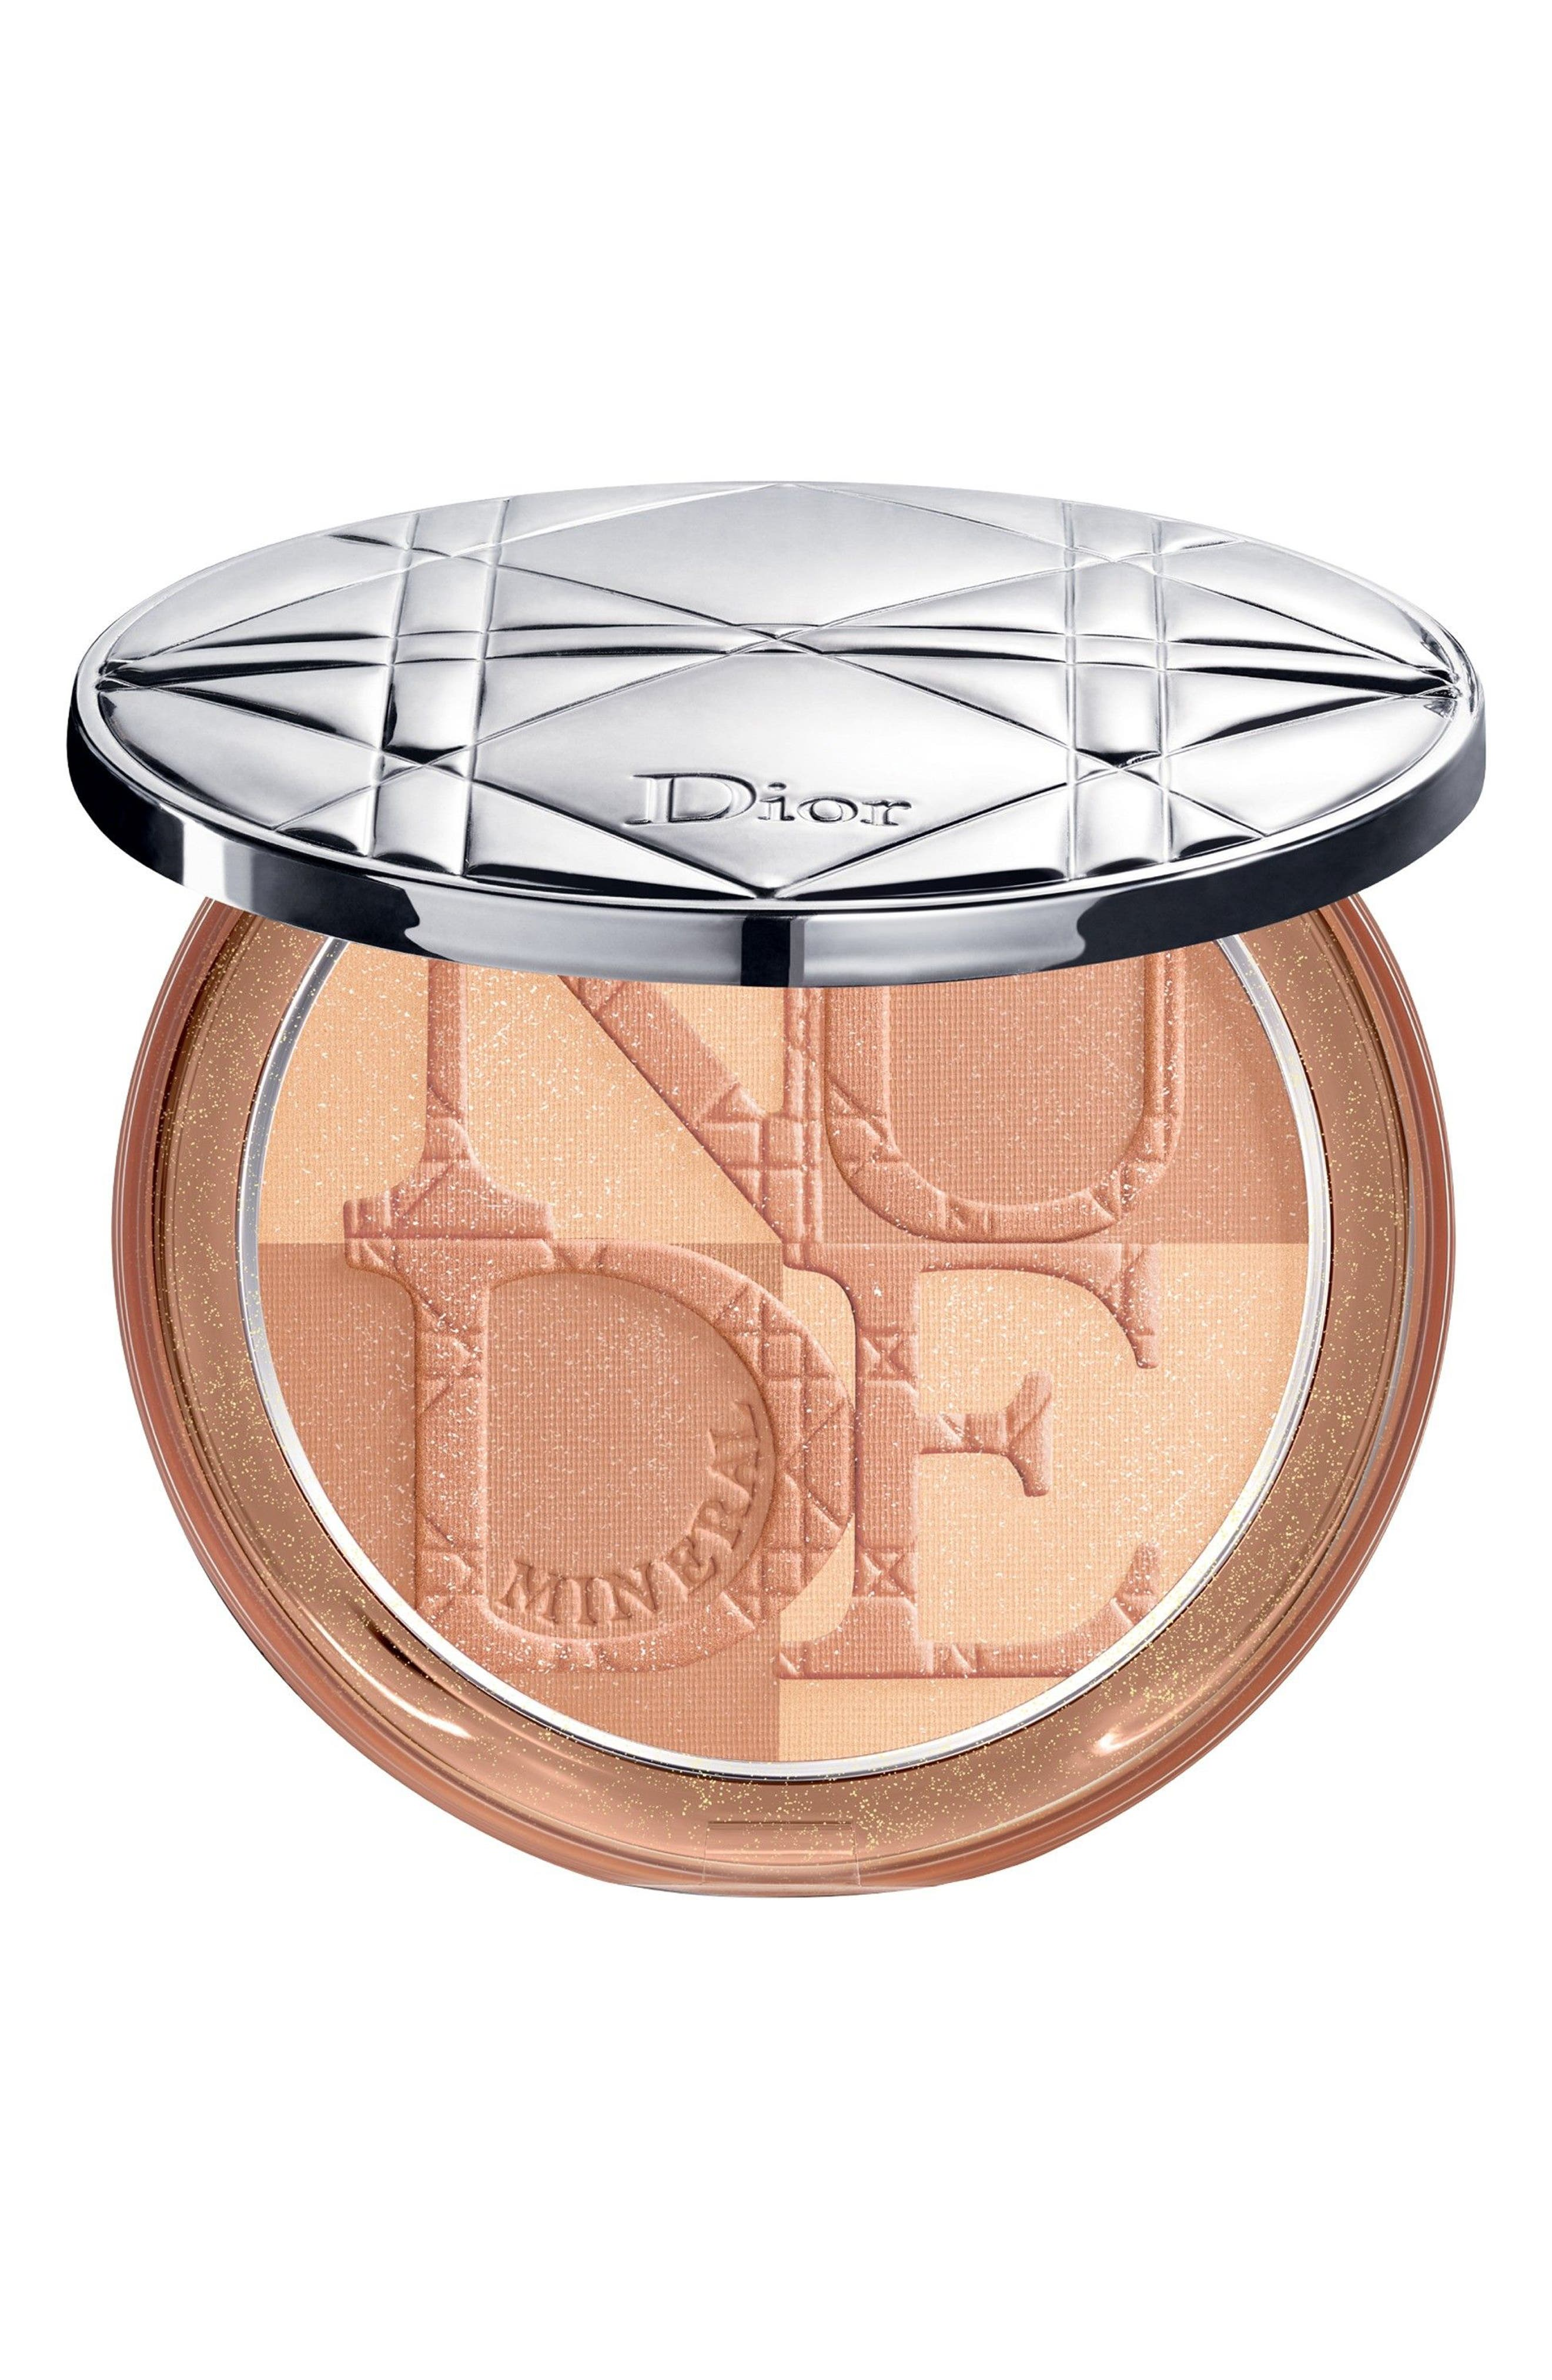 DIOR Diorskin Mineral Nude Bronze Powder, Main, color, 001 SOFT SUNRISE